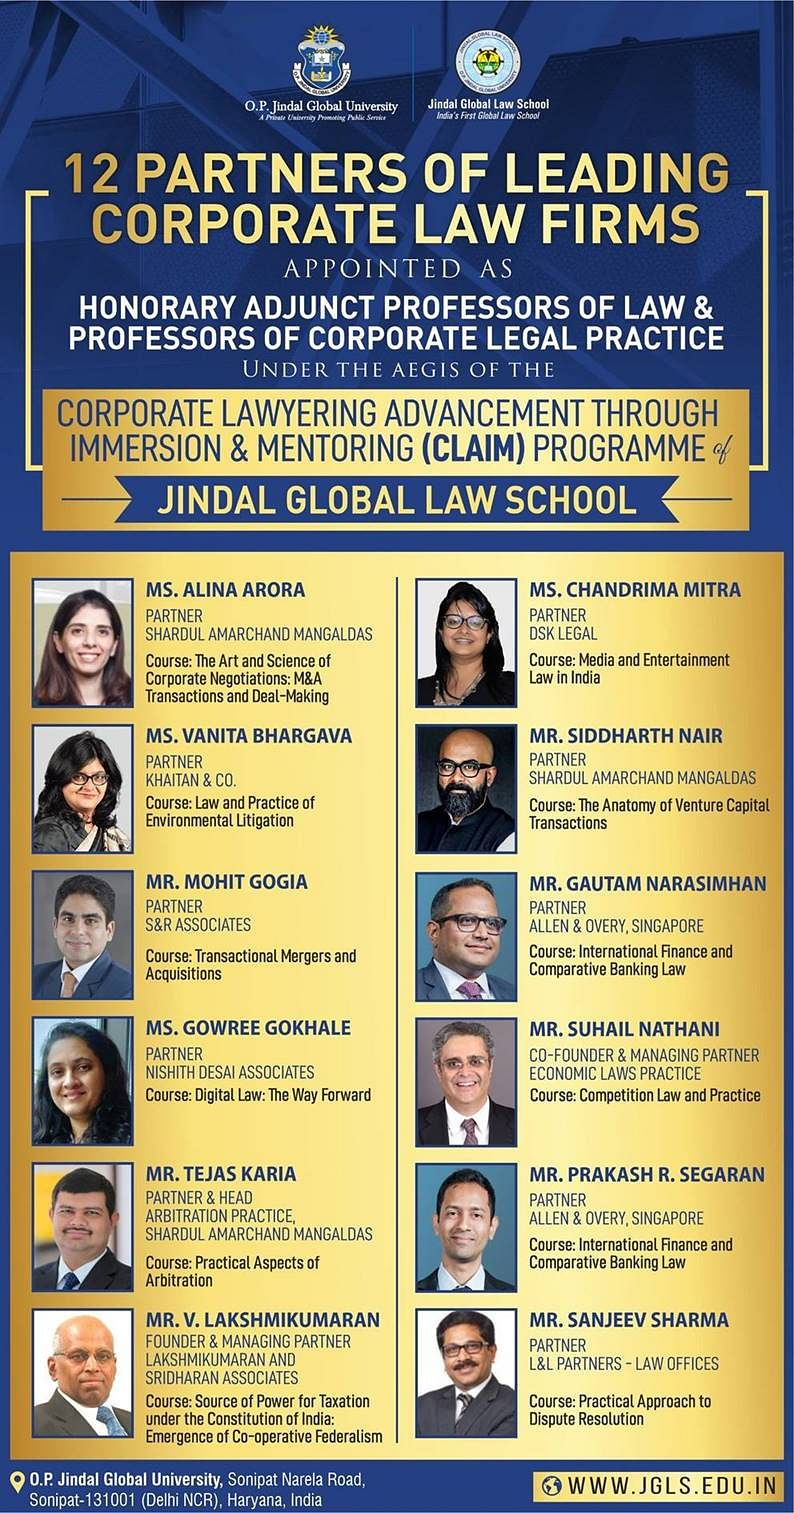 The Corporate Law Firm Partners appointed as Hon Adjunct Professors